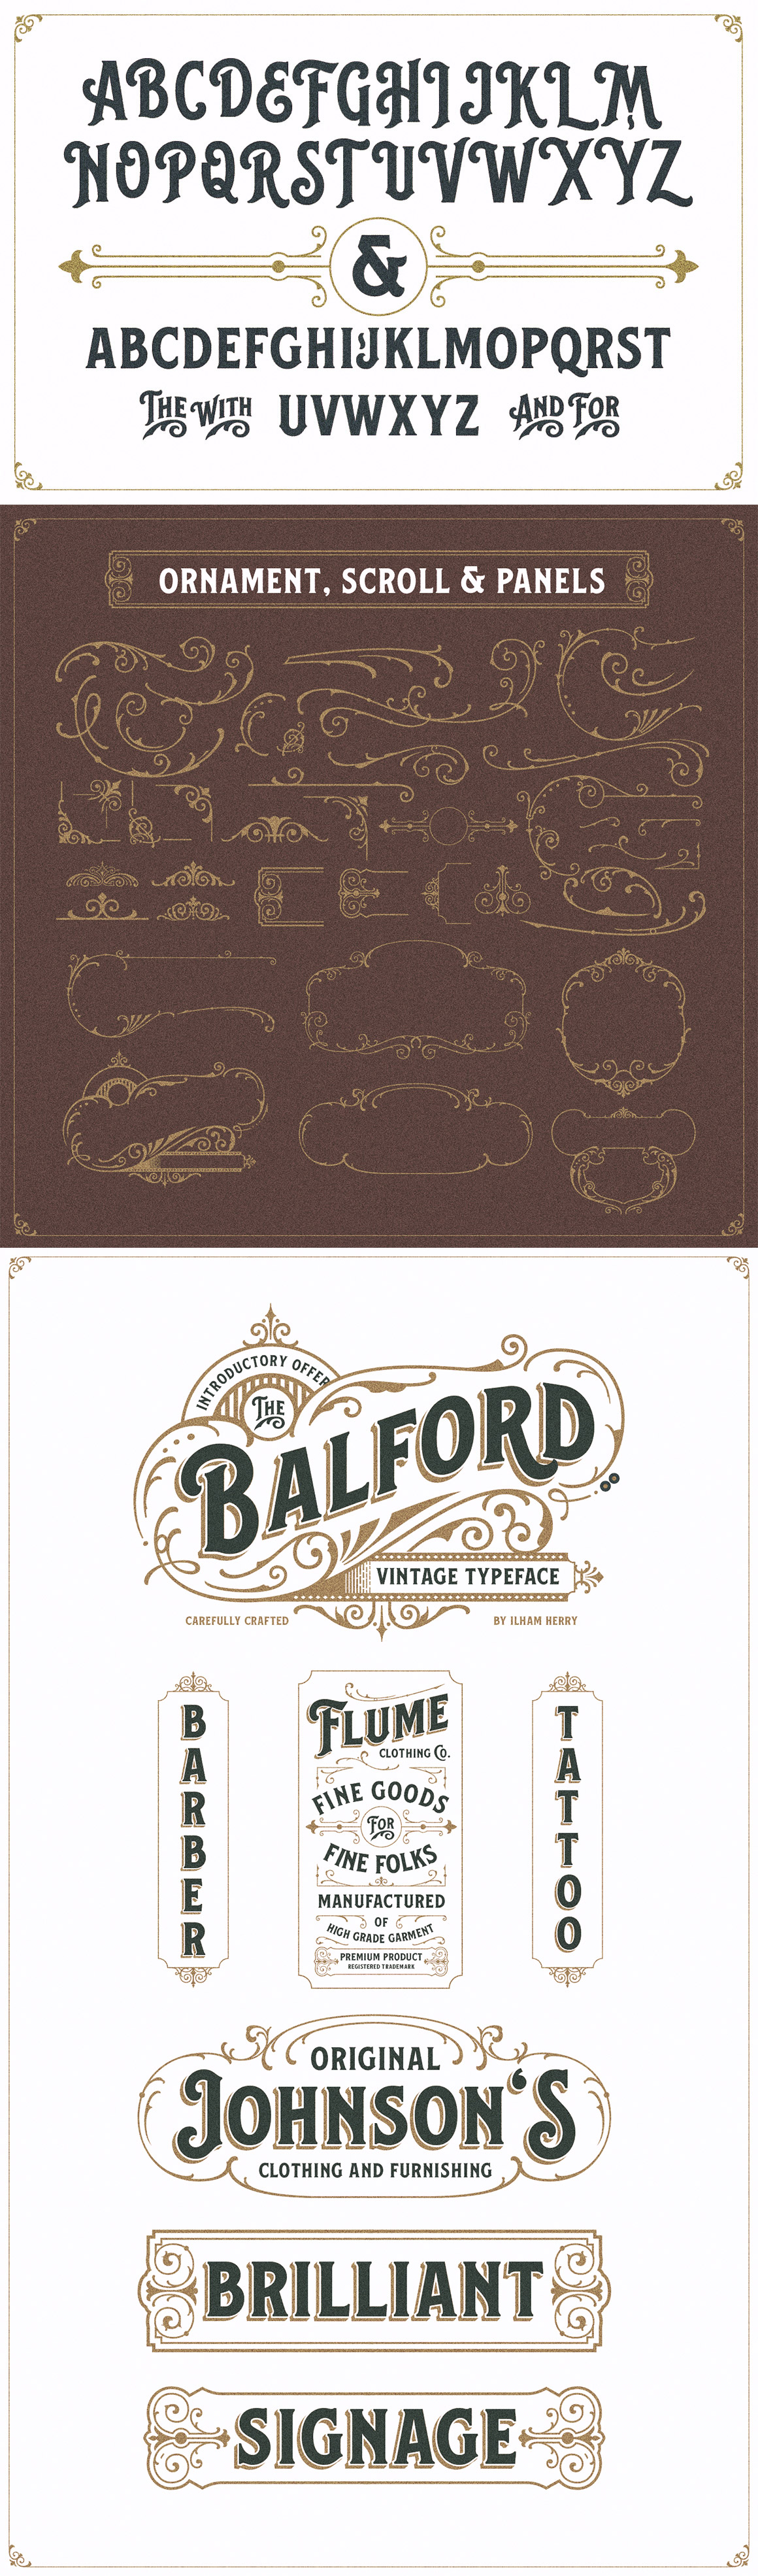 balford font and ornament free download